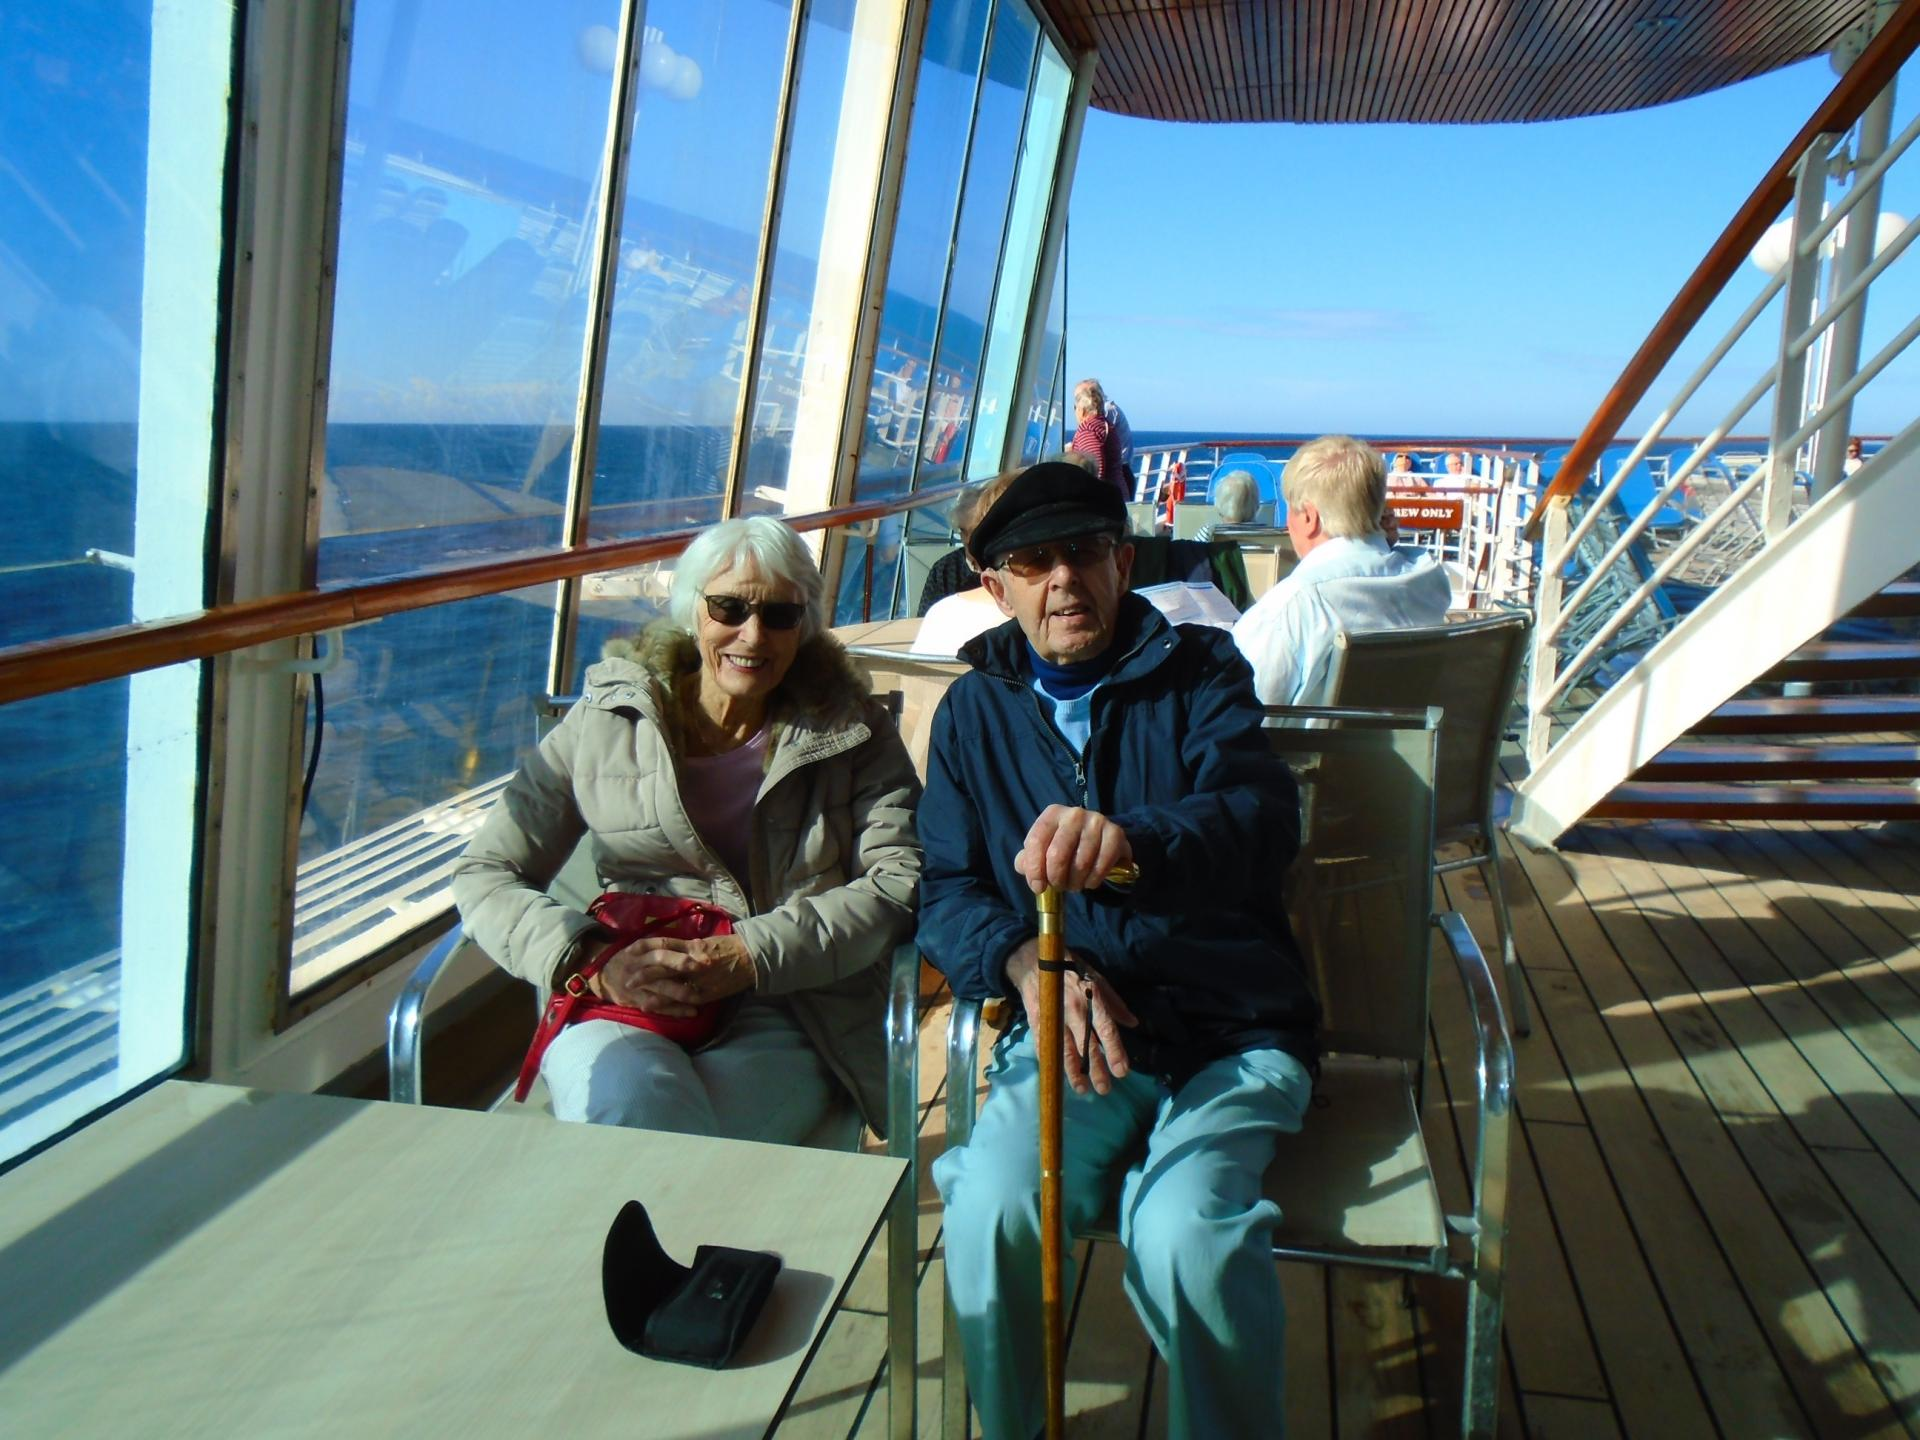 John with his wife Anna cruising